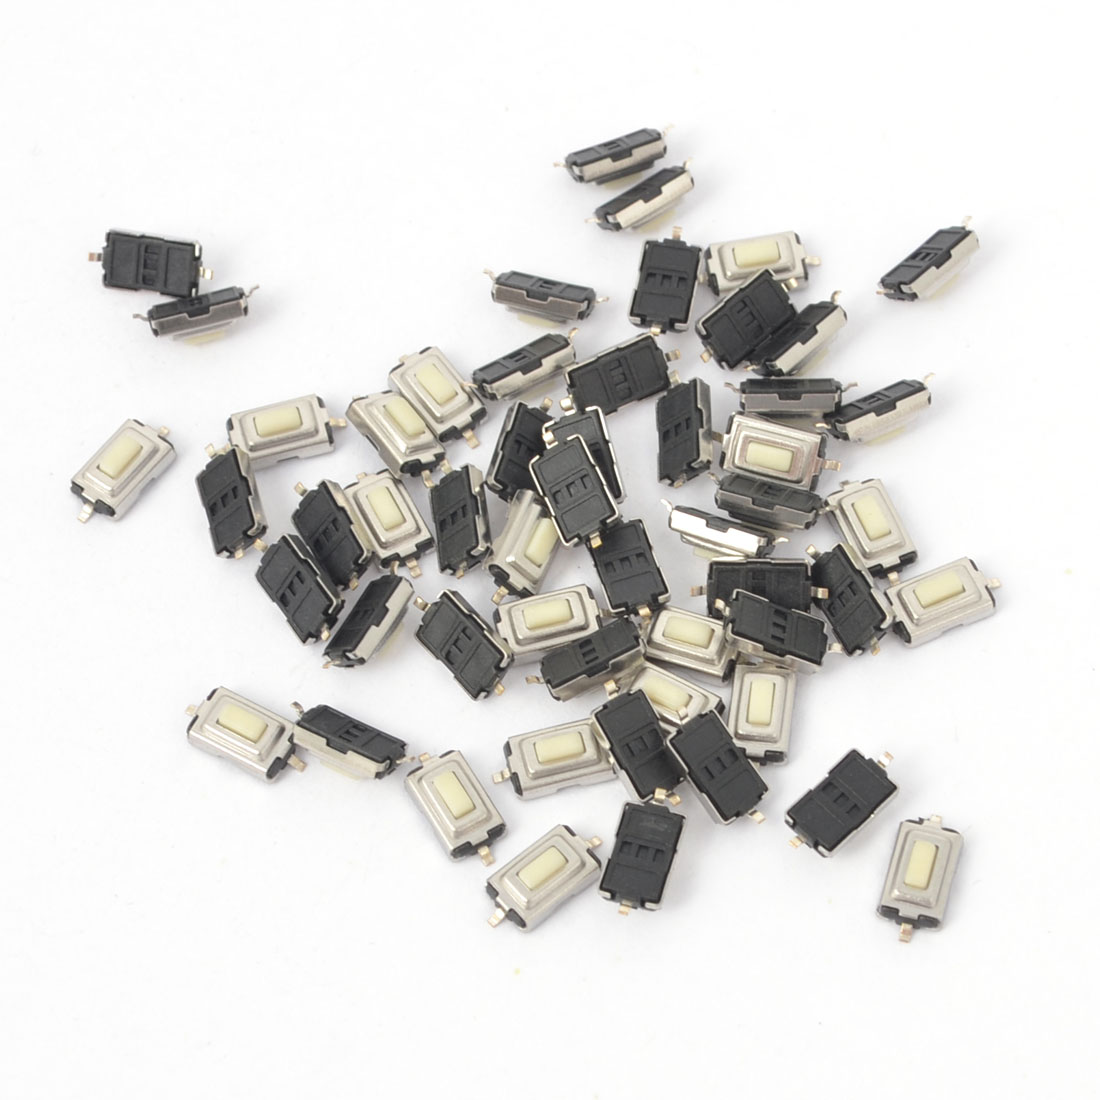 55Pcs Momentary Tact Tactile Push Button Switch 3x6x2.5mm 2-Terminals